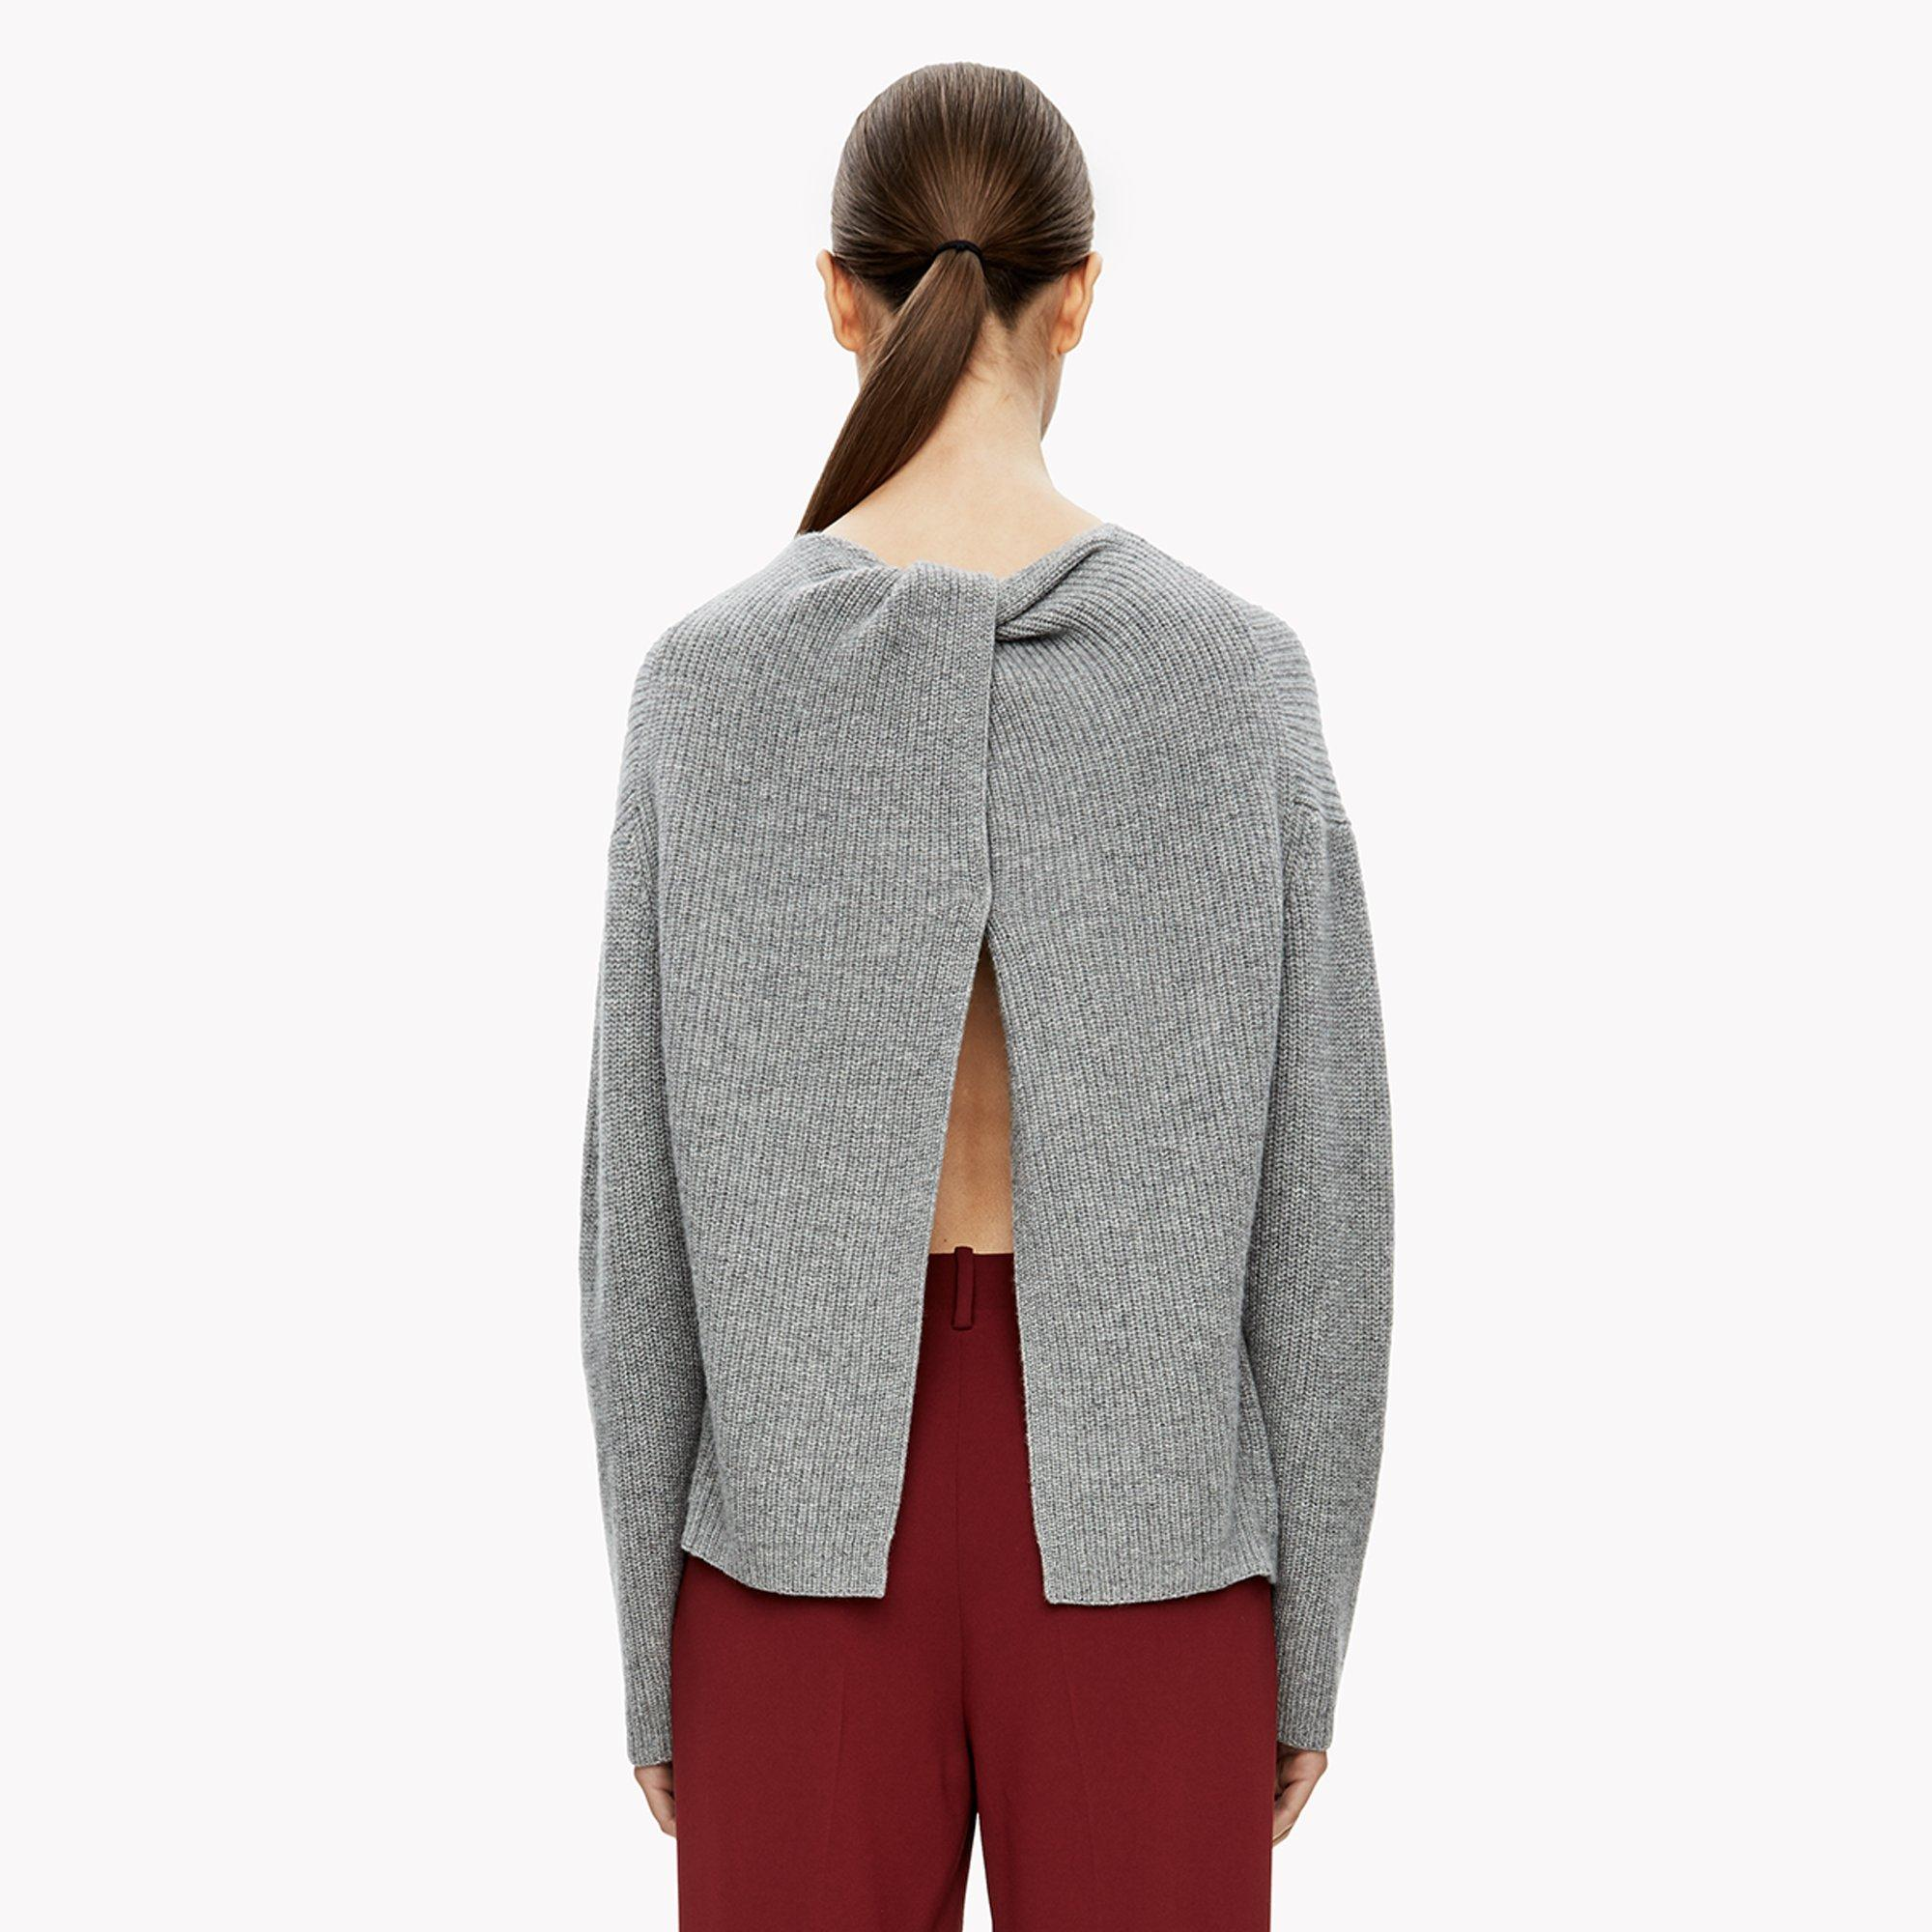 Lyst - Theory Cashmere Twist-back Sweater in Gray 2bb5c5246